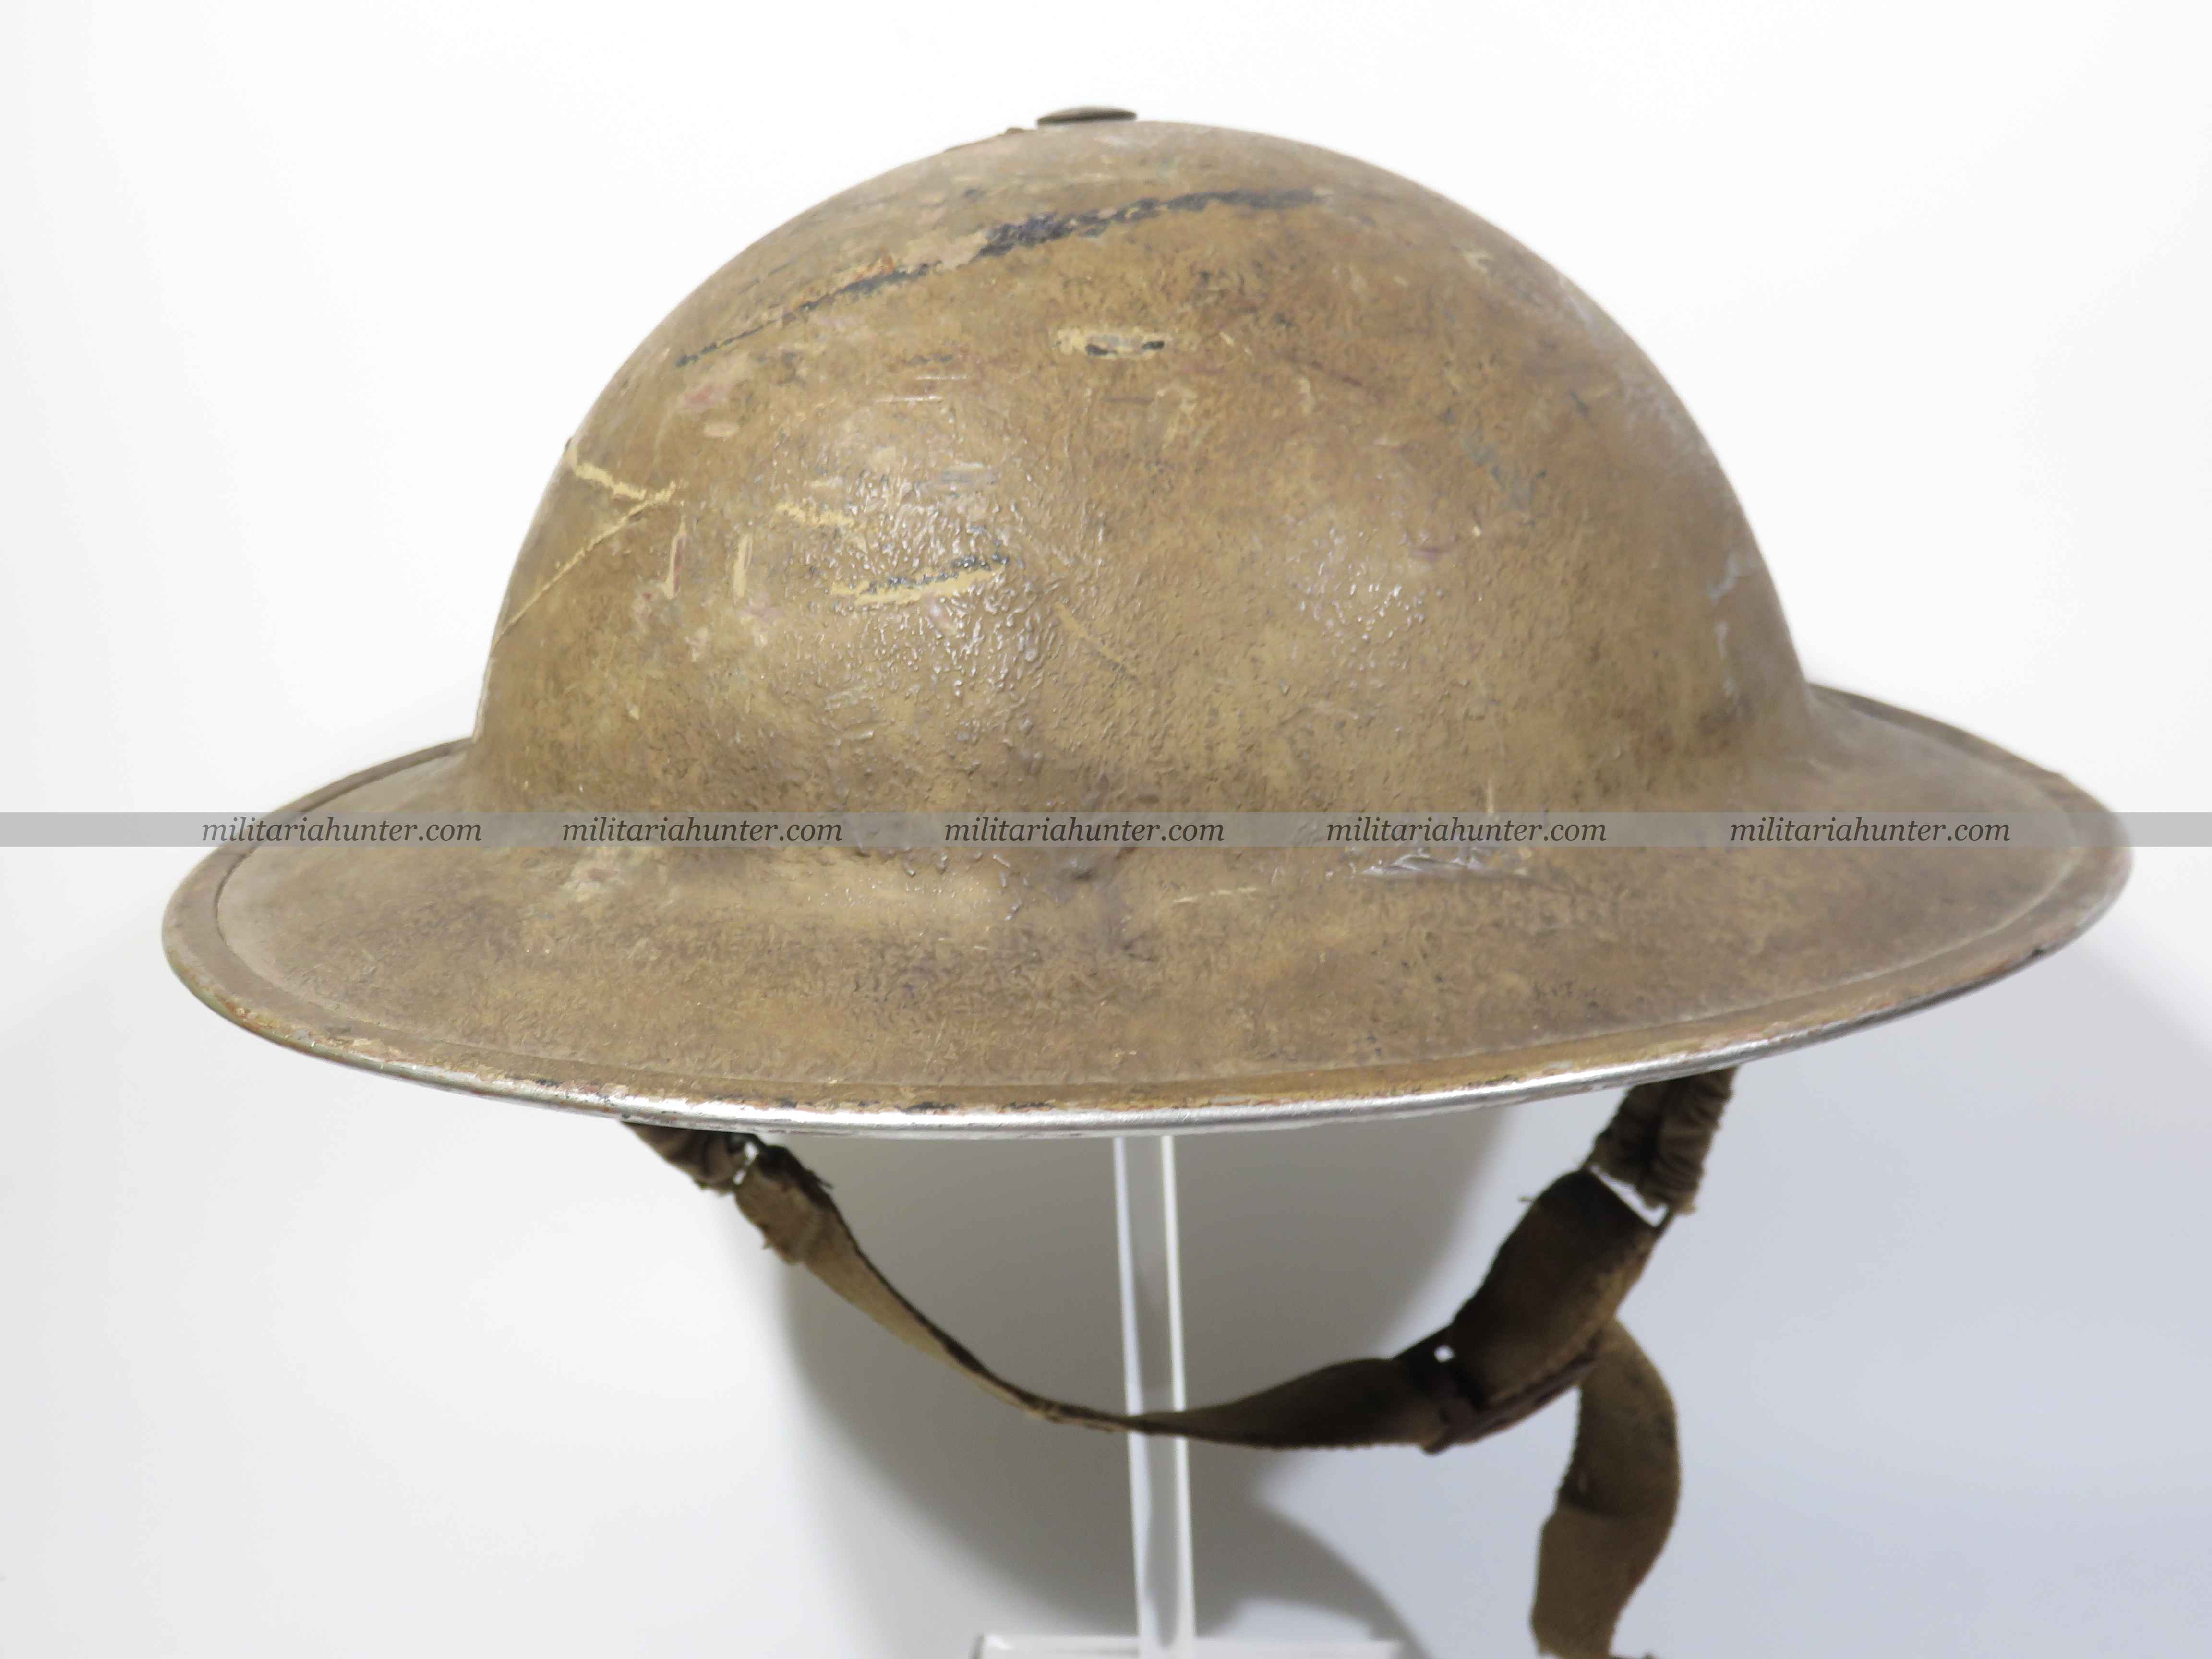 militaria : ww2 South African MkII helmet sand finish / casque sud africain